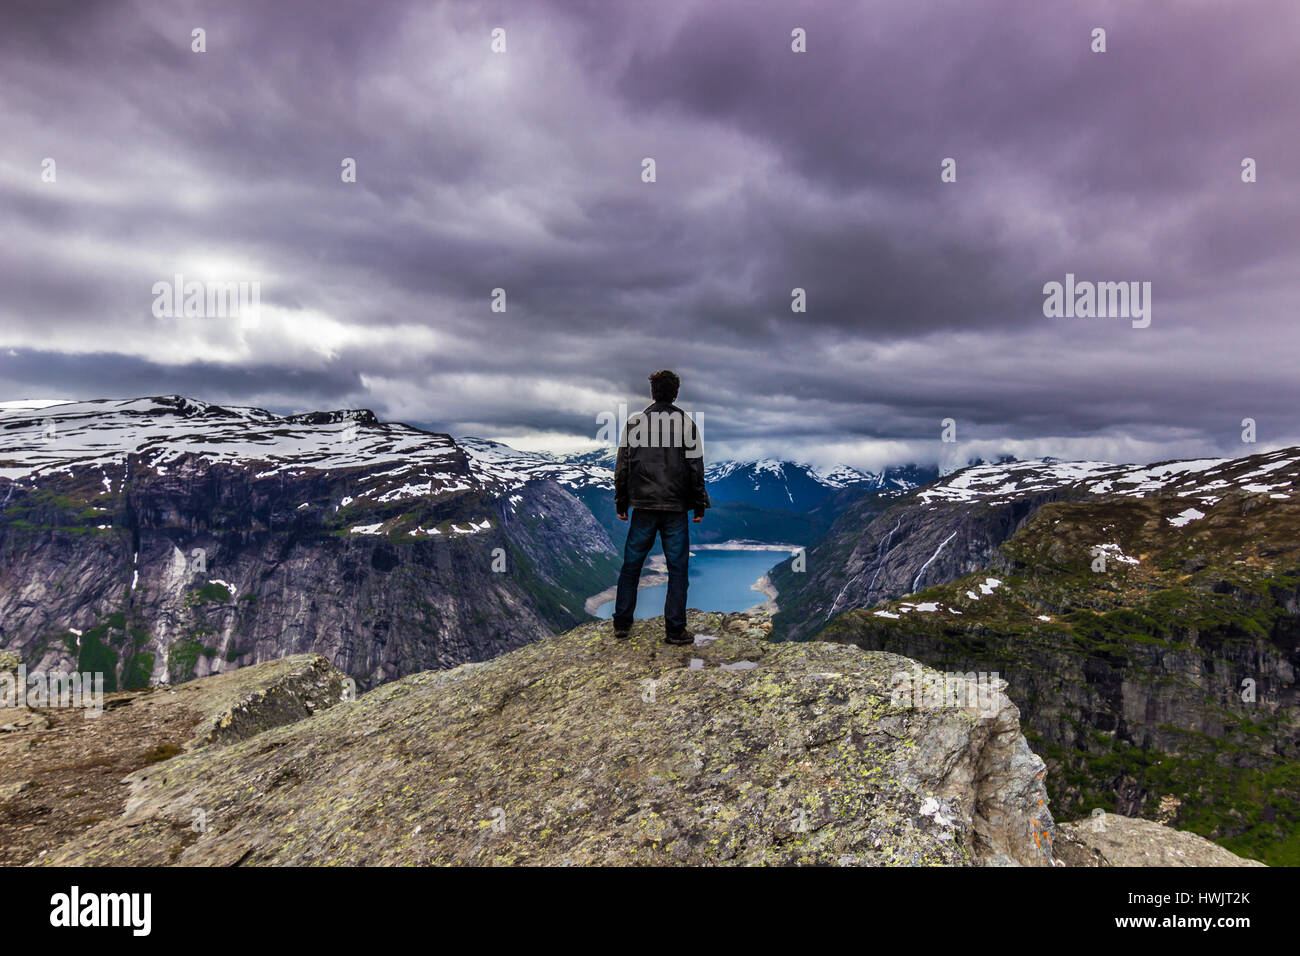 July 22, 2015: Panorama of traveller at the edge of Trolltunga, Norway Stock Photo